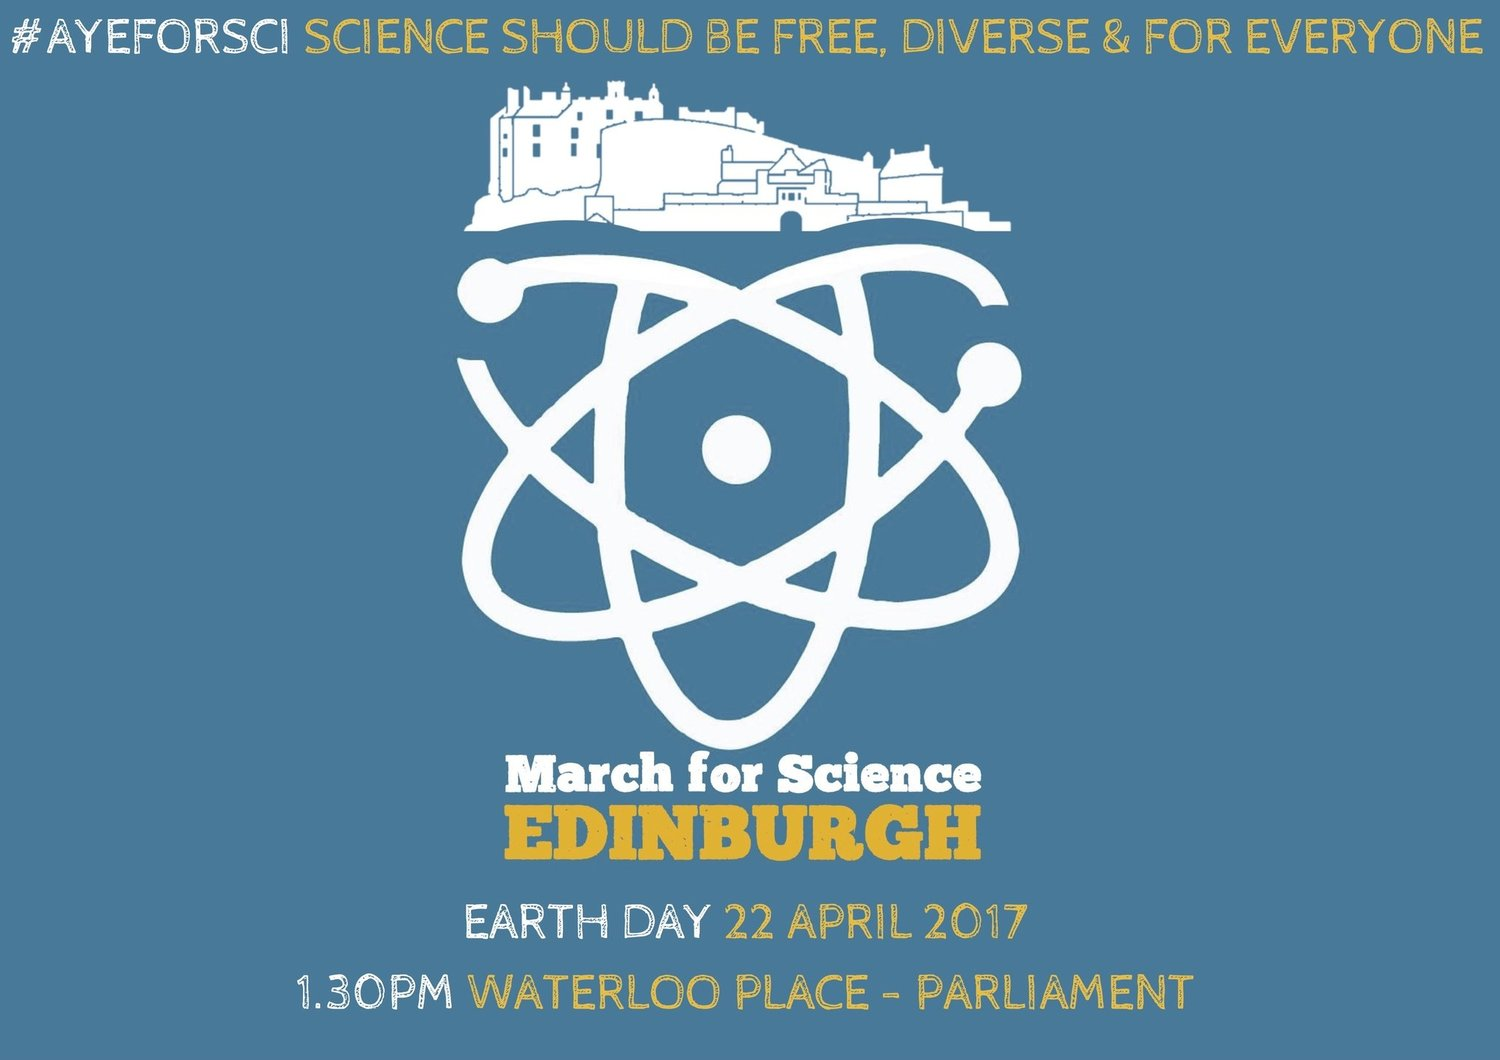 March for Science Edinburgh